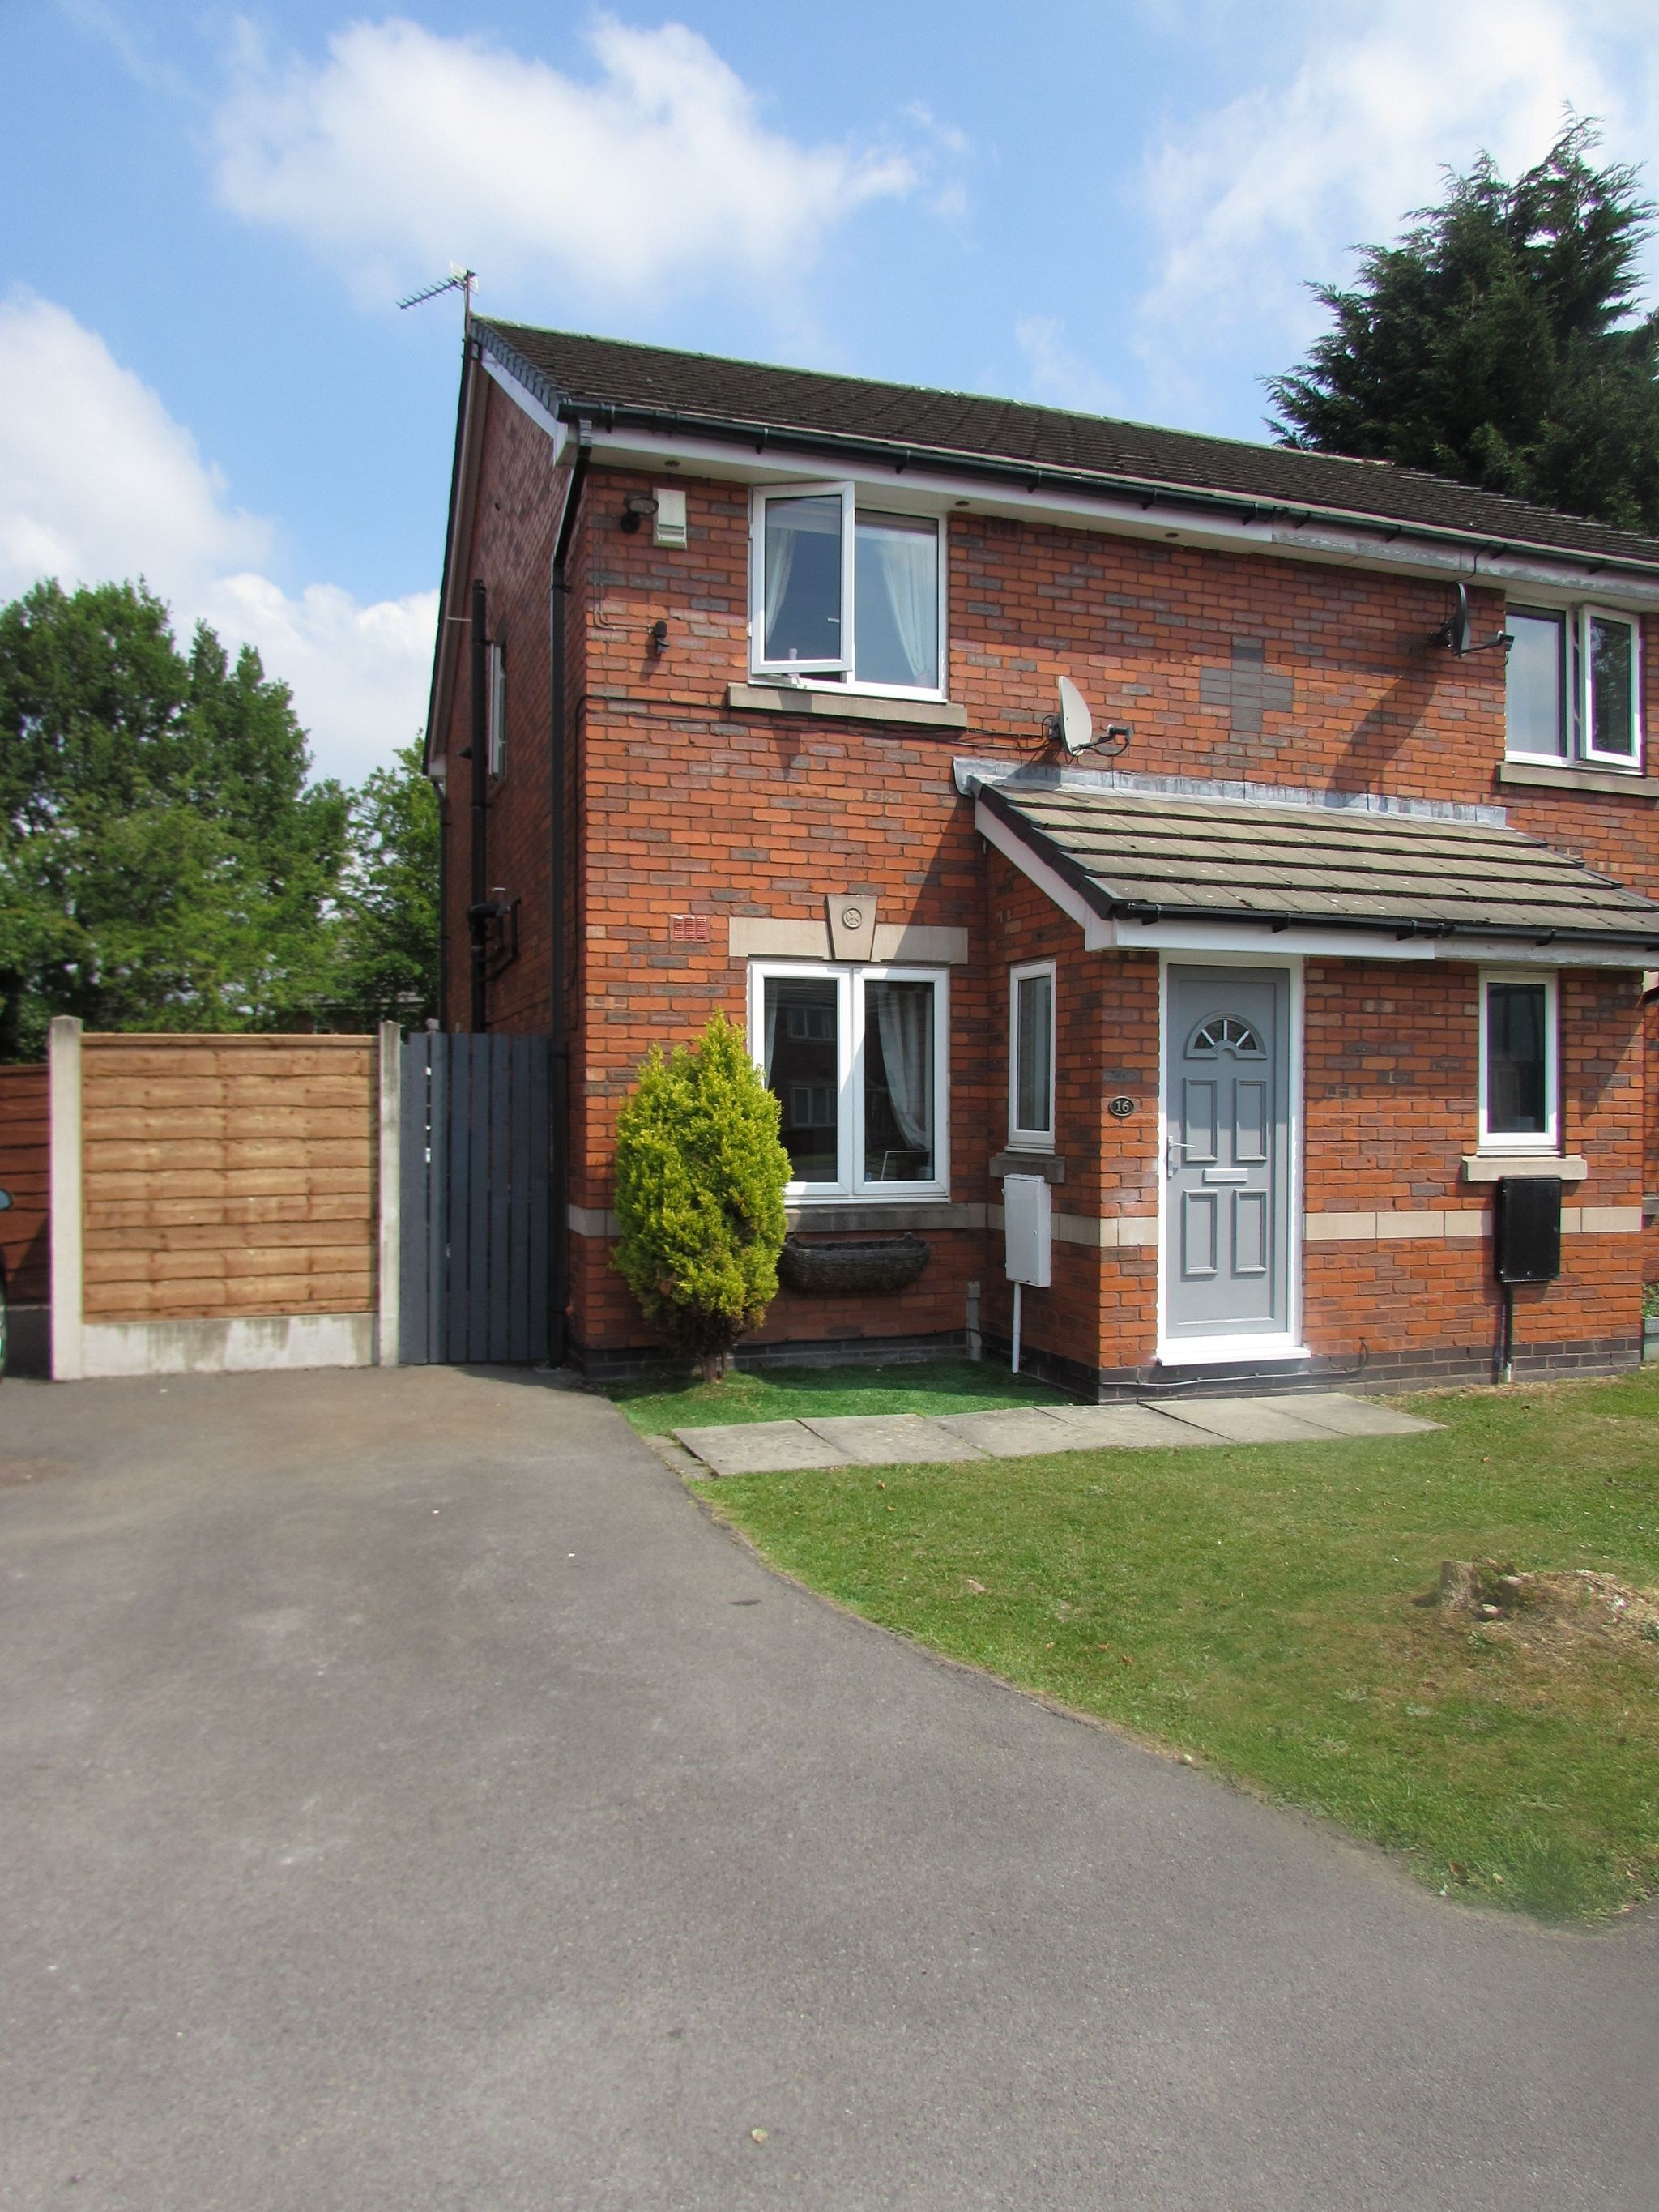 2 Bedroom Semi-detached House For Sale - Front